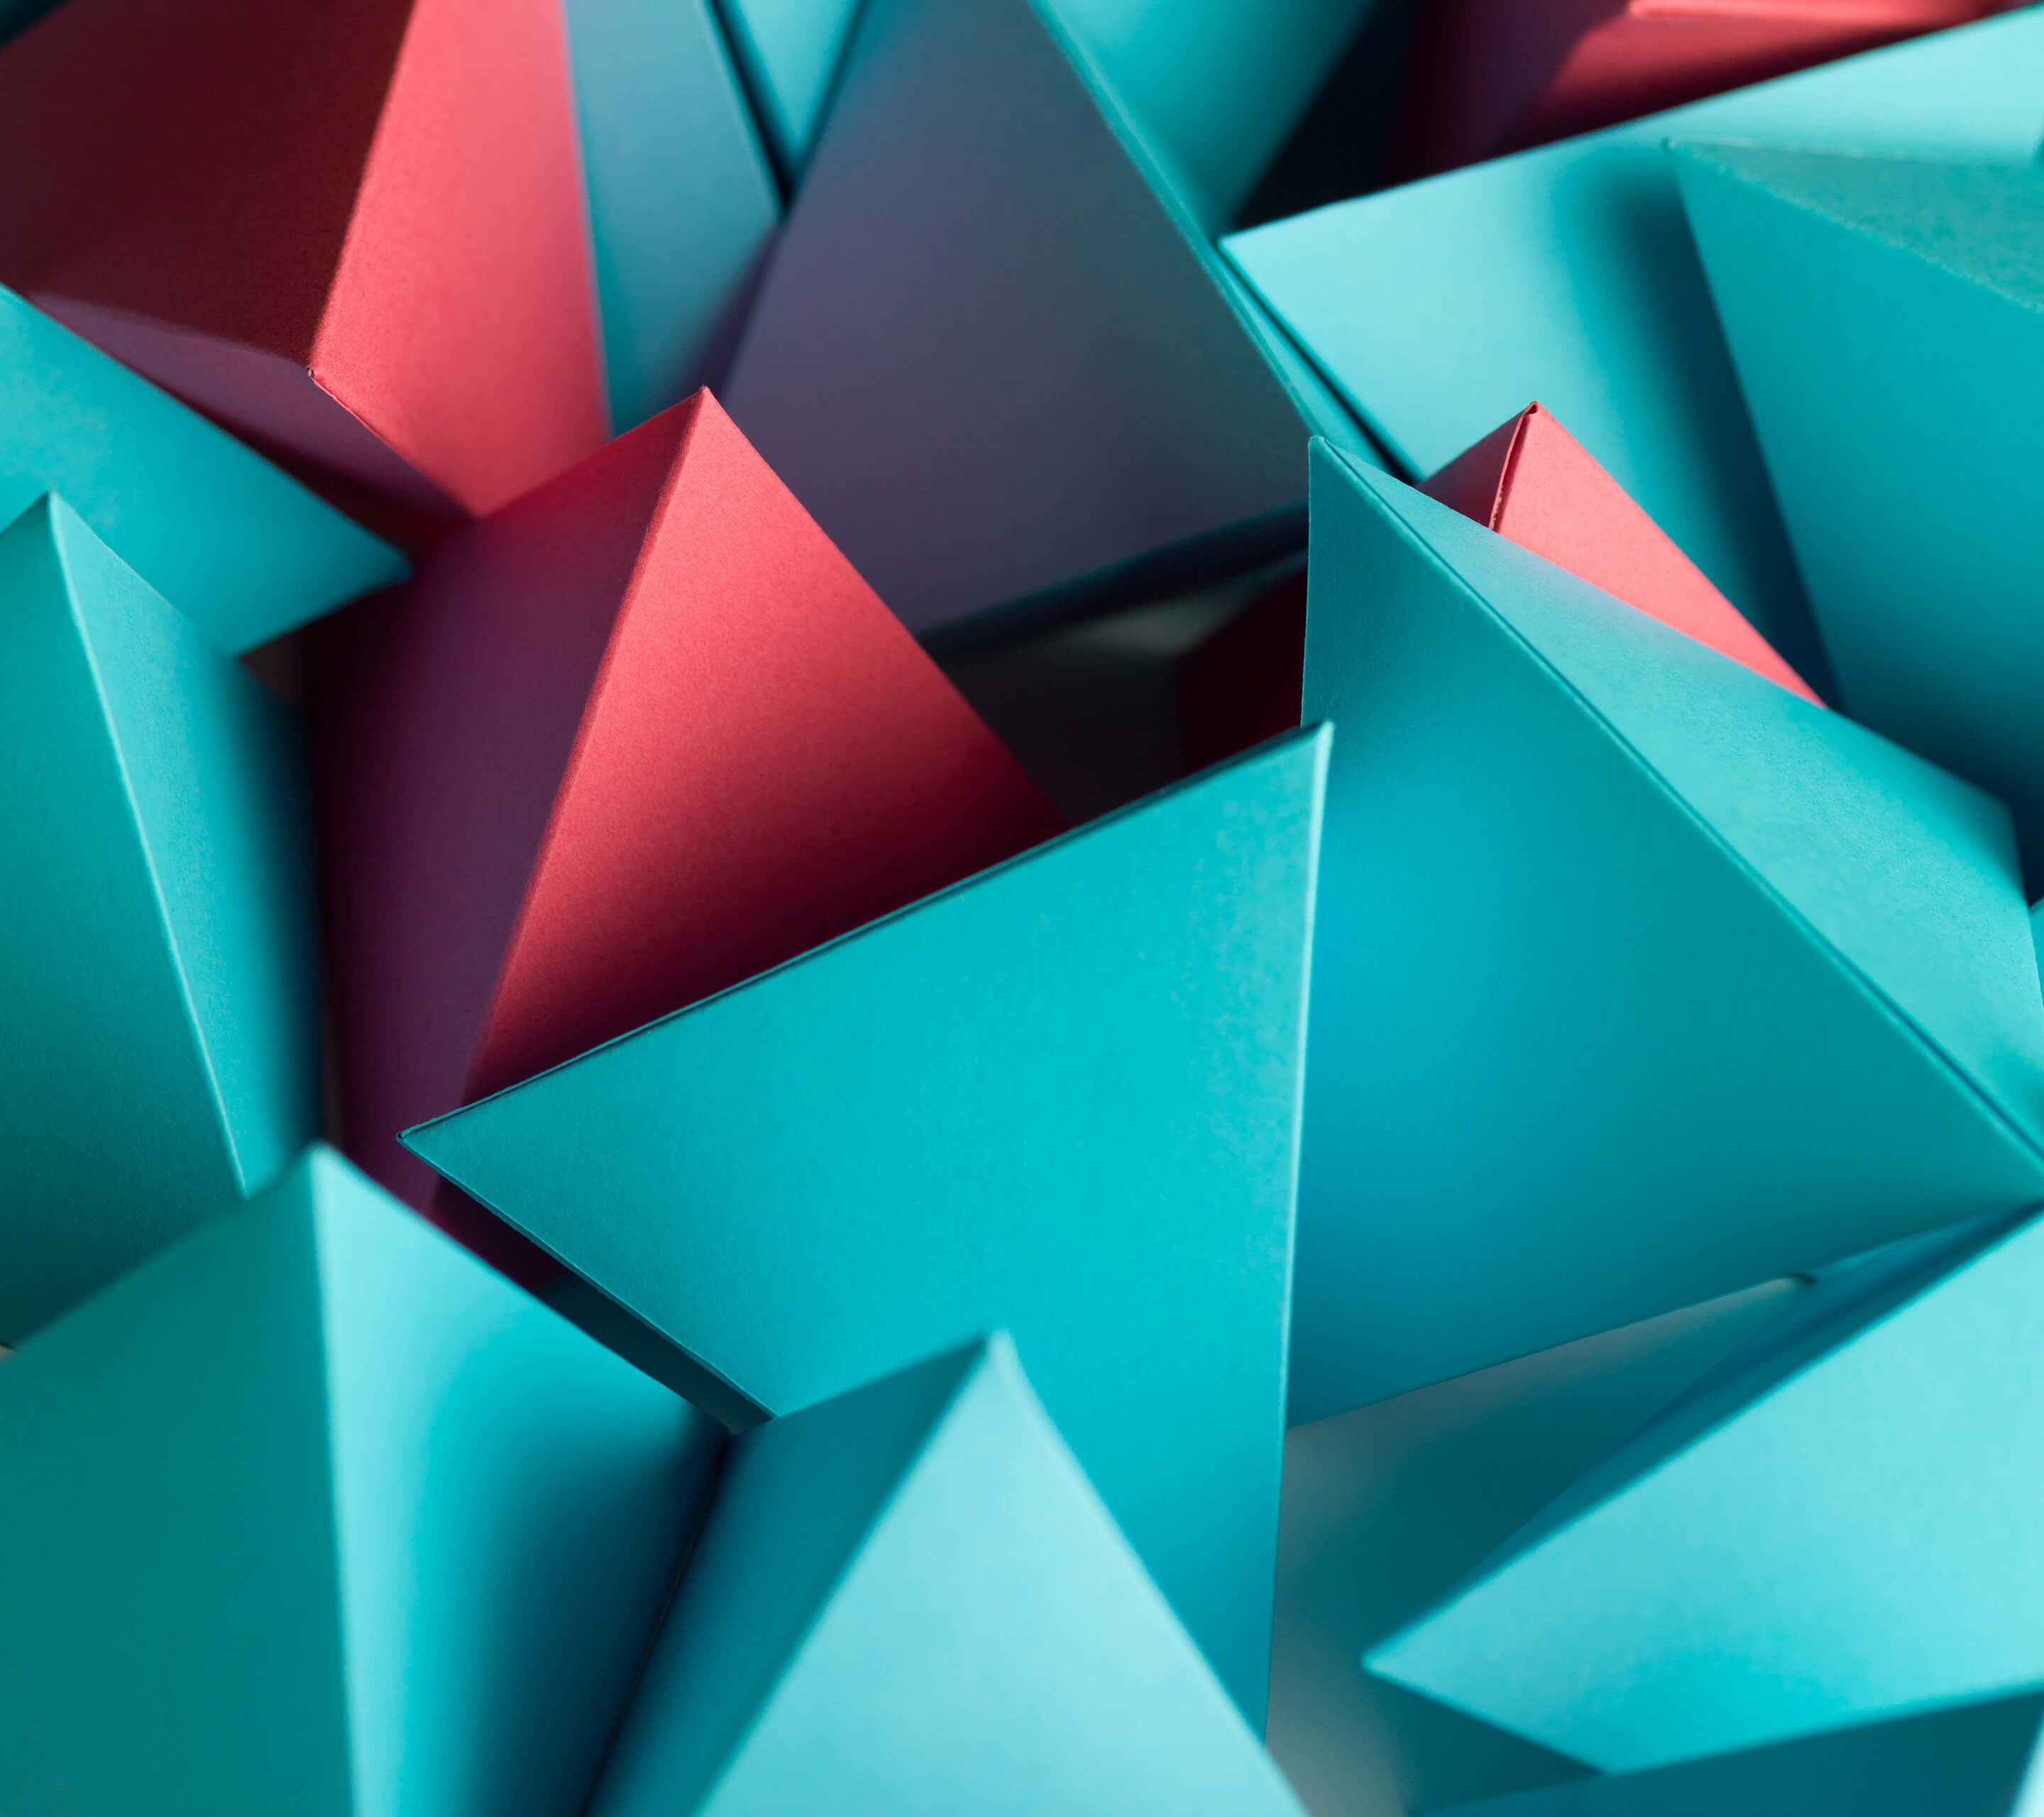 3d Geometric Abstract Wallpapers Top Free 3d Geometric Abstract Backgrounds Wallpaperaccess